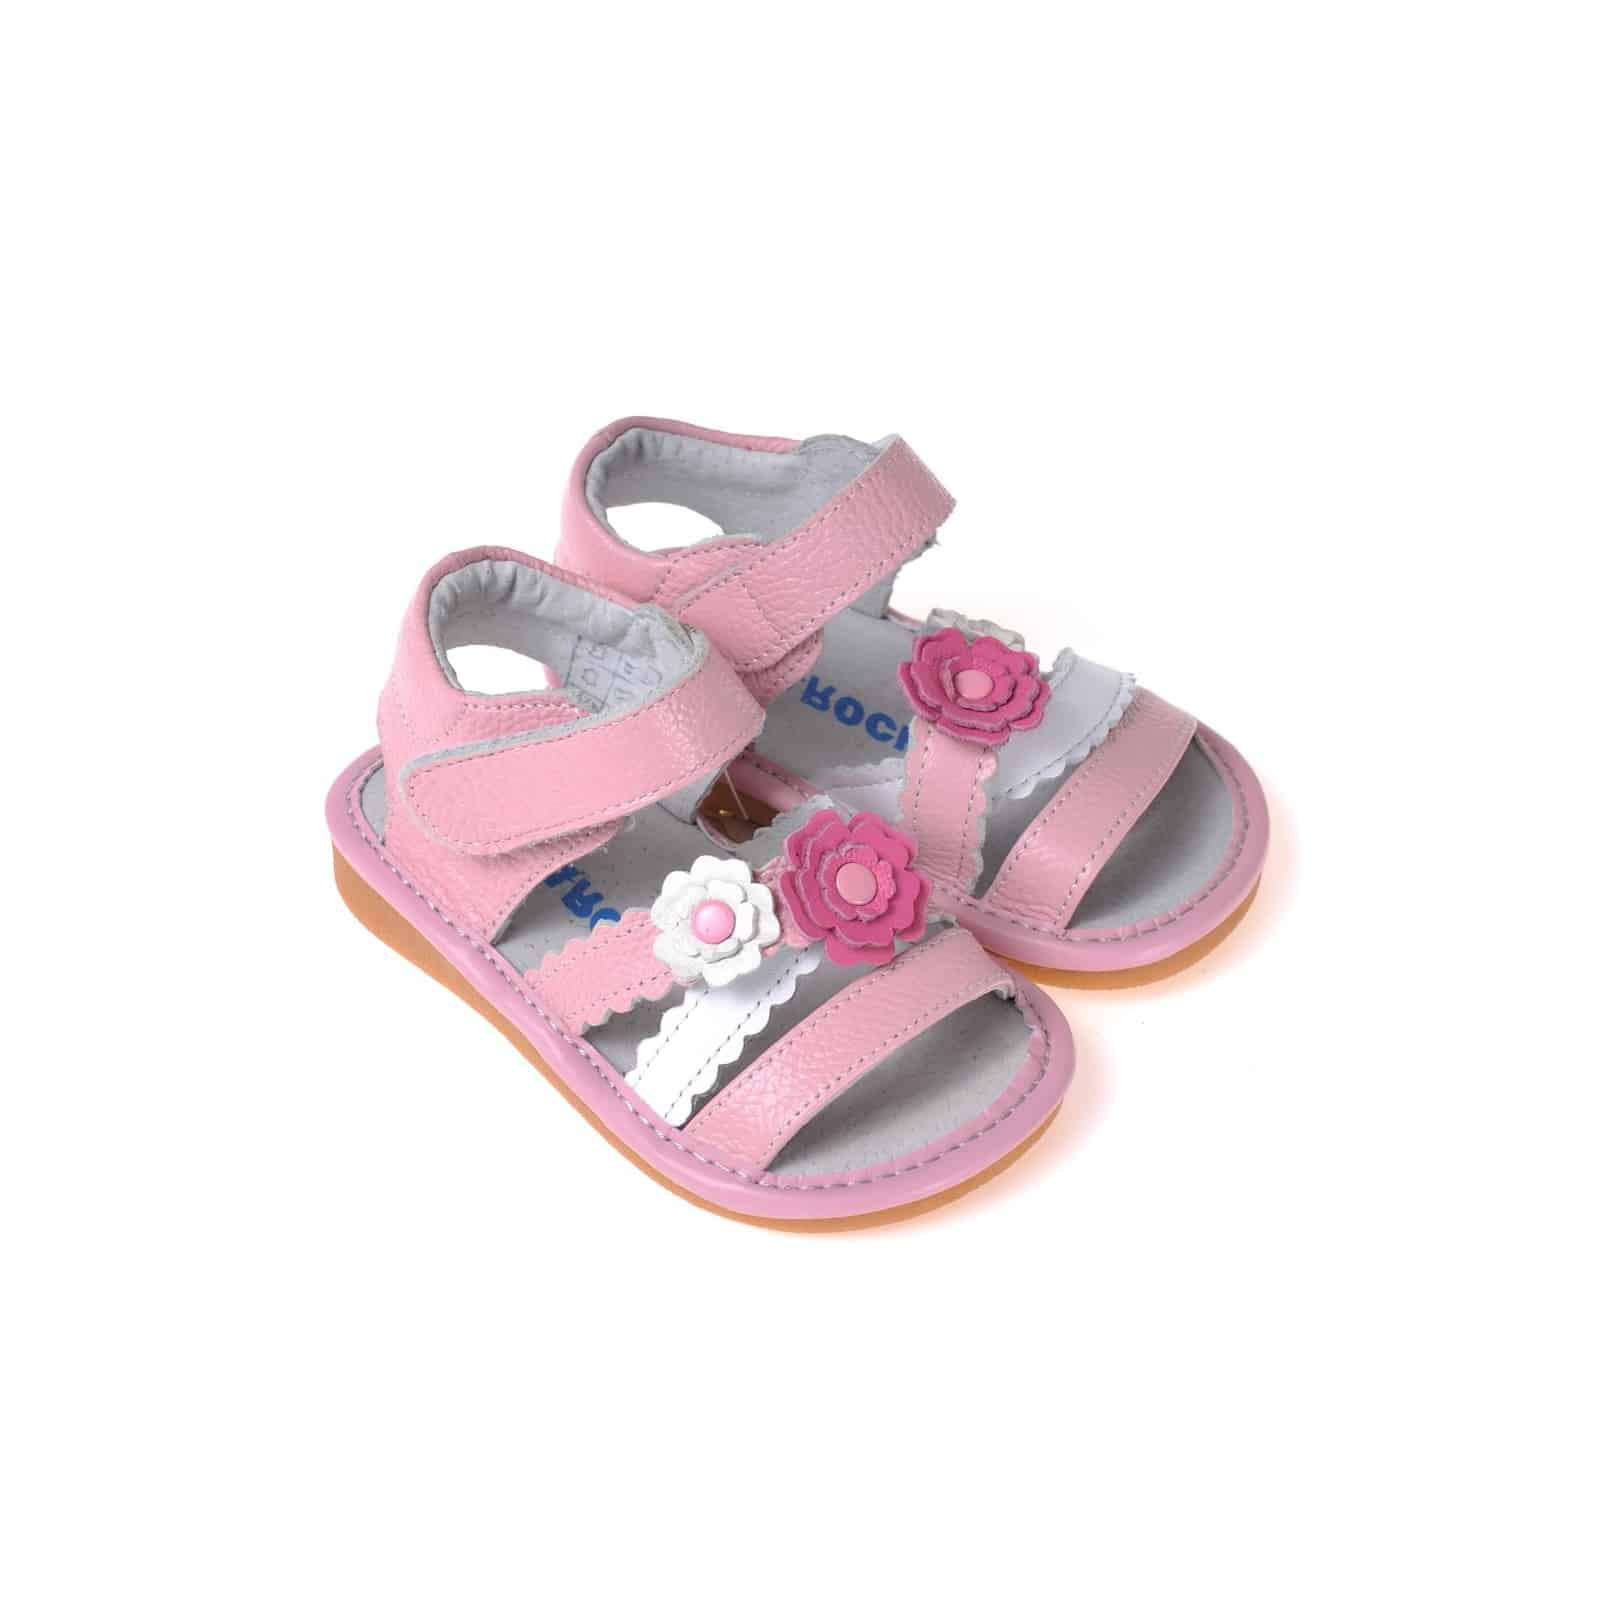 Caroch squeaky leather toddler girls shoes pink and white caroch squeaky leather toddler girls shoes pink and white flowers sandals mightylinksfo